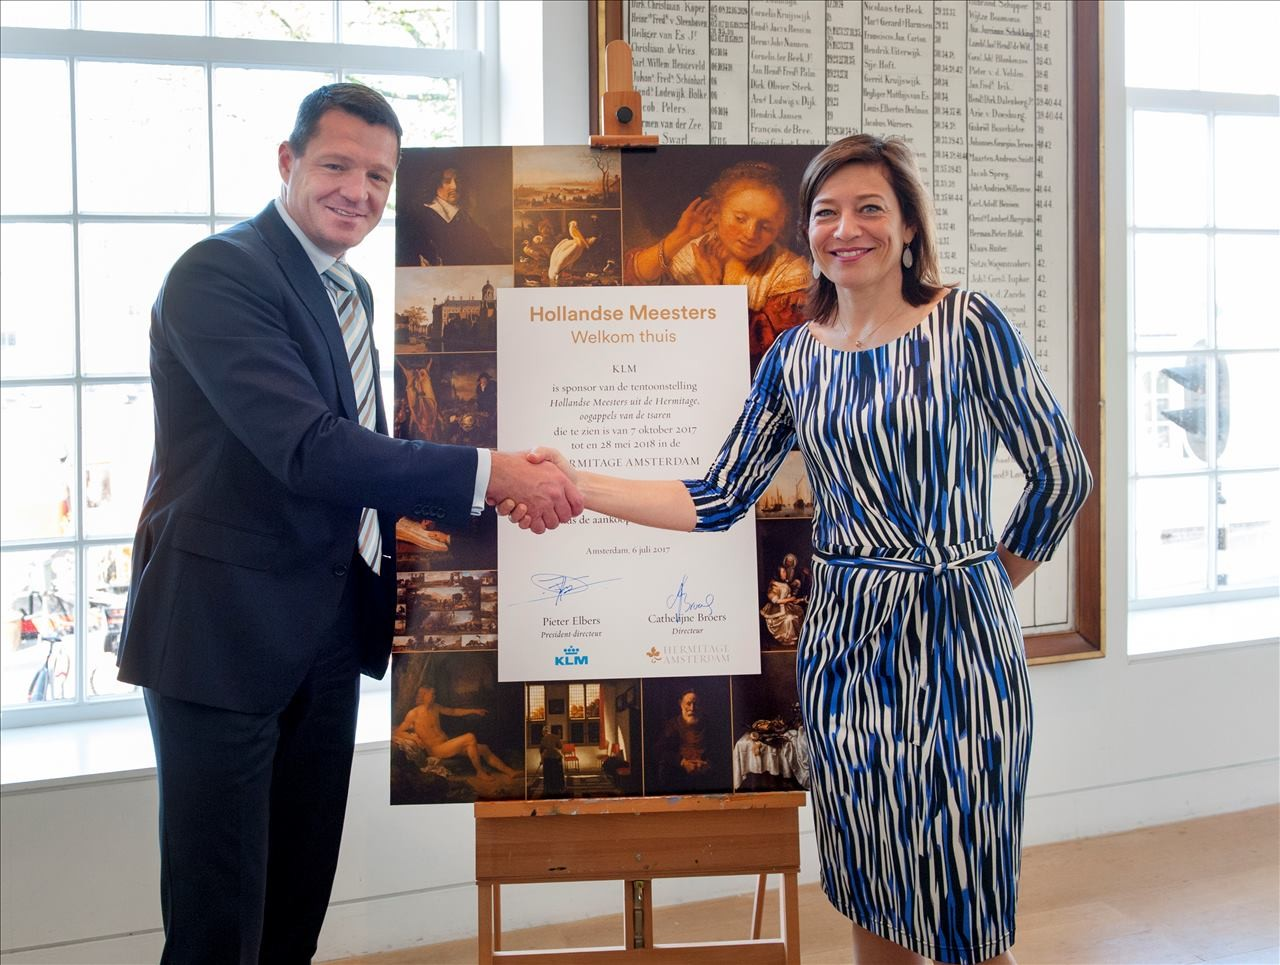 KLM transports Dutch Masters back to the Netherlands after 300 years